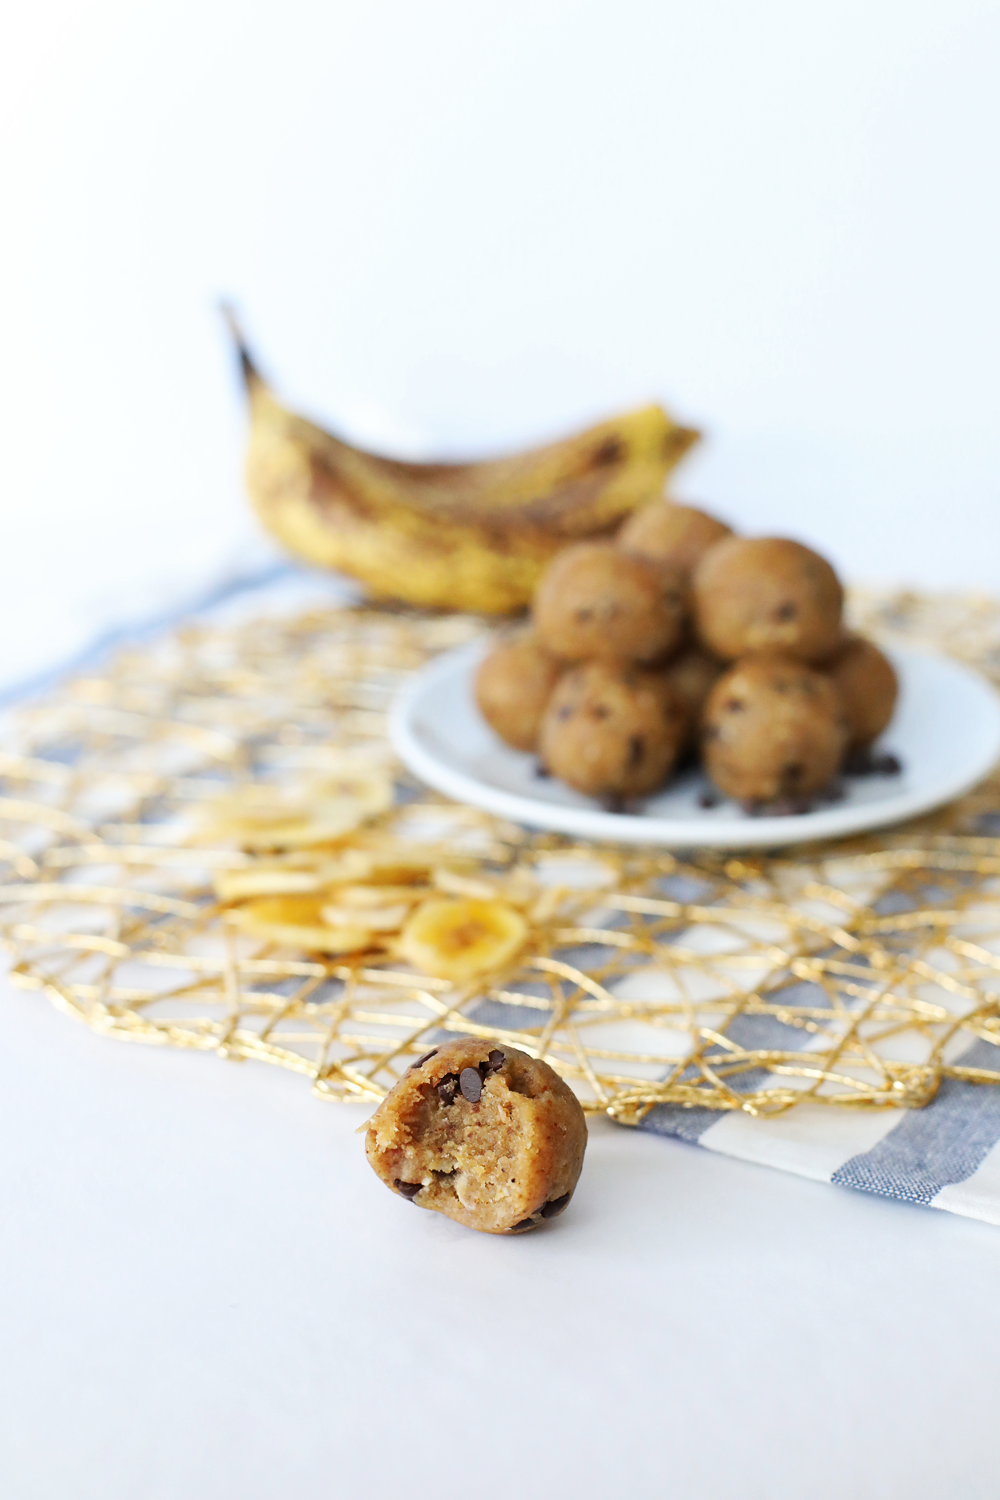 Banana Chocolate Chip Energy Balls